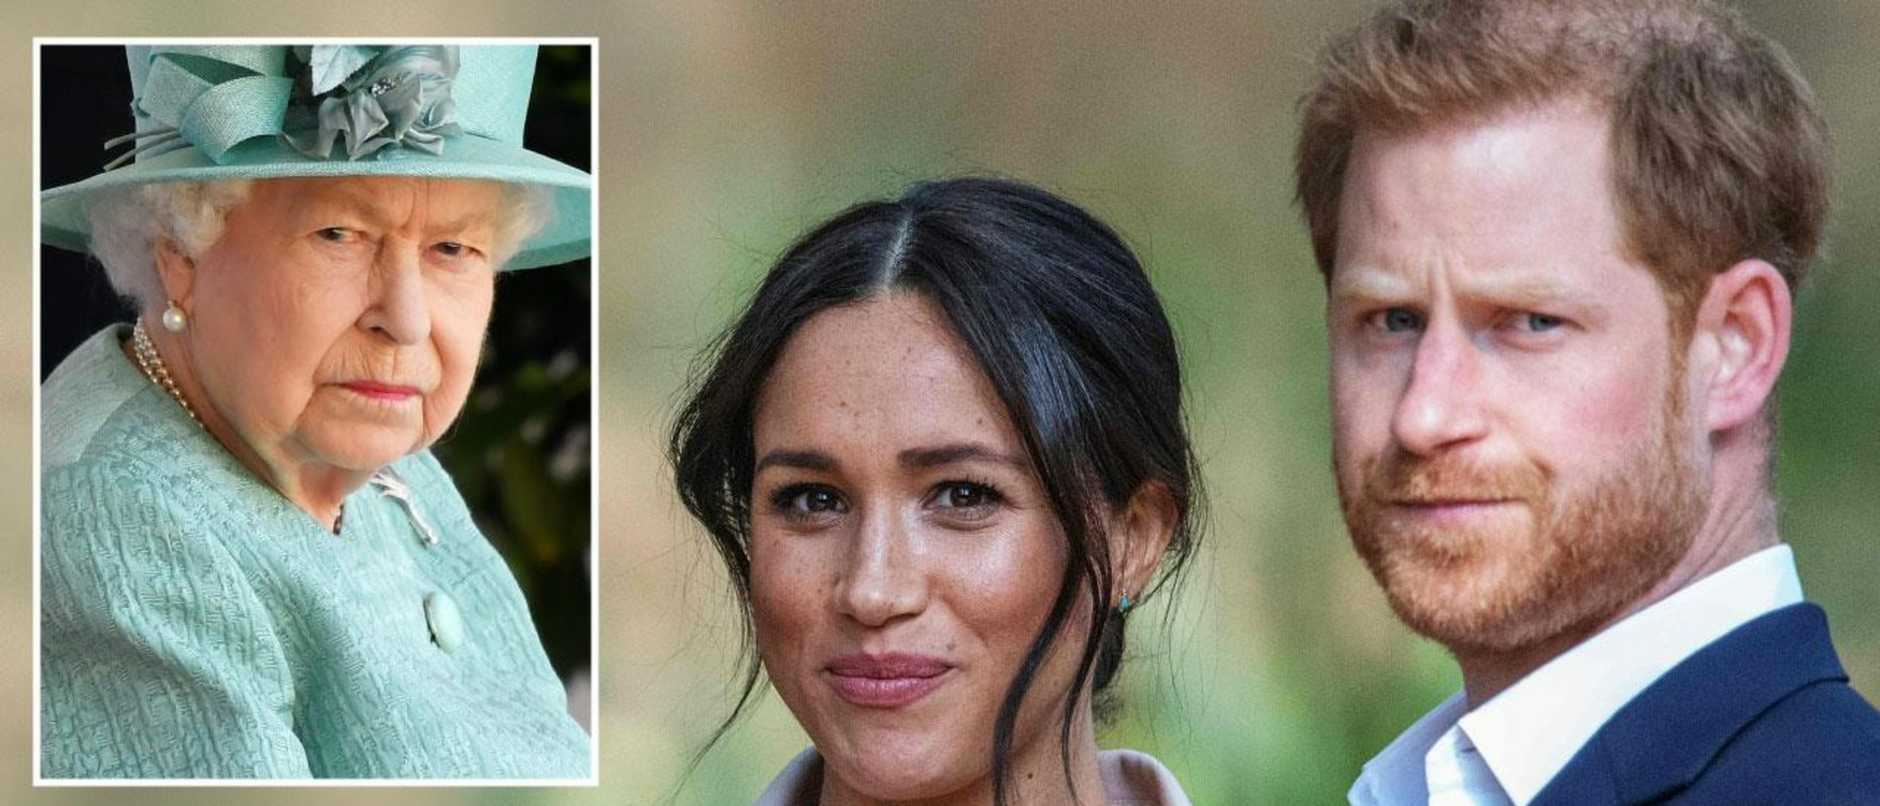 The explosive new book Finding Freedom has revealed how Prince Harry and Meghan Markle's night nurse was sacked just two days into caring for their son Archie.